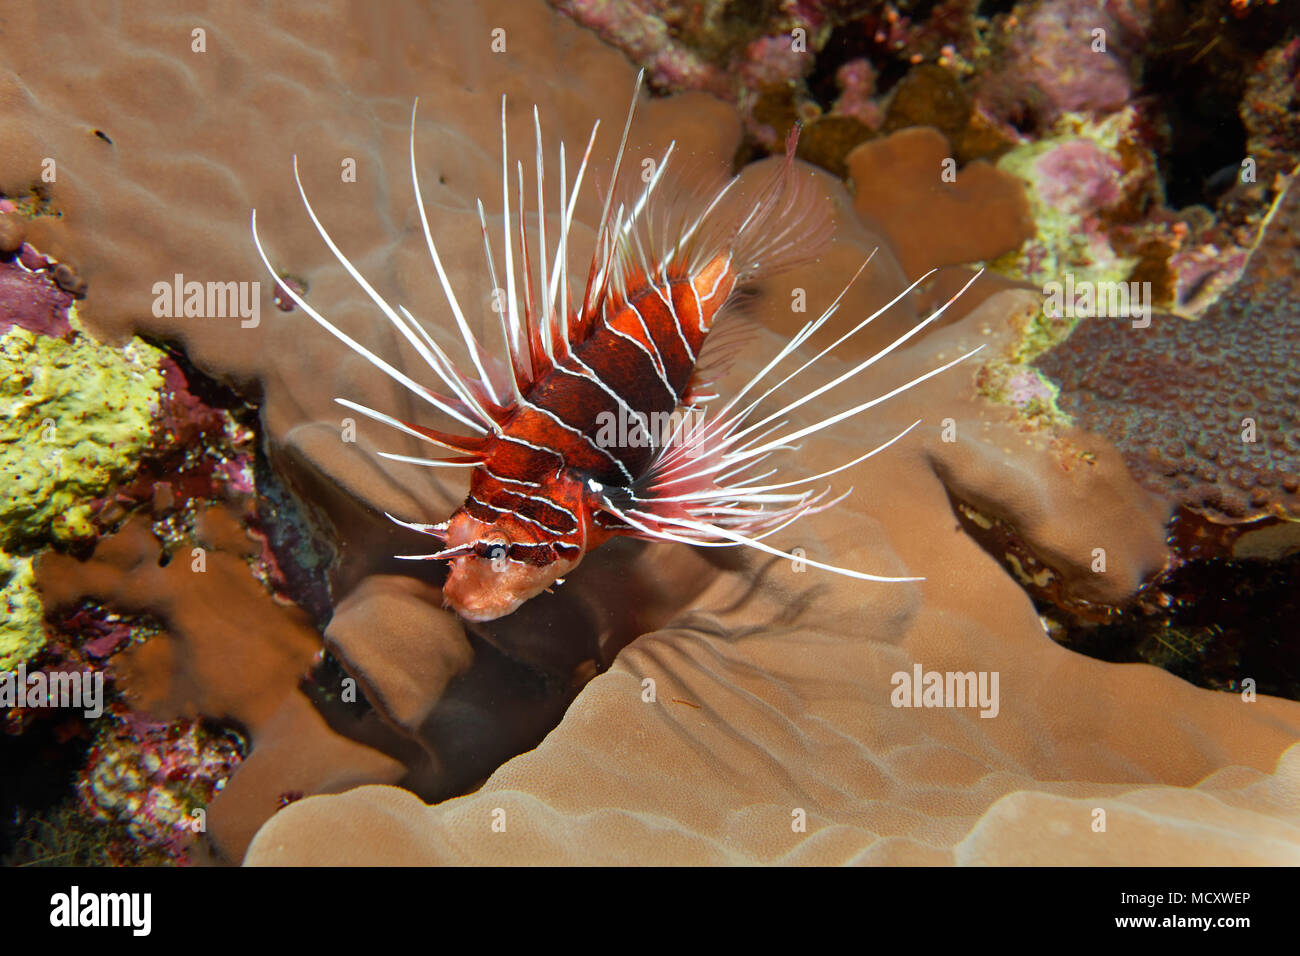 Radial firefish (Pterois radiata) in the coral reef, nocturnal, Red Sea, Egypt - Stock Image